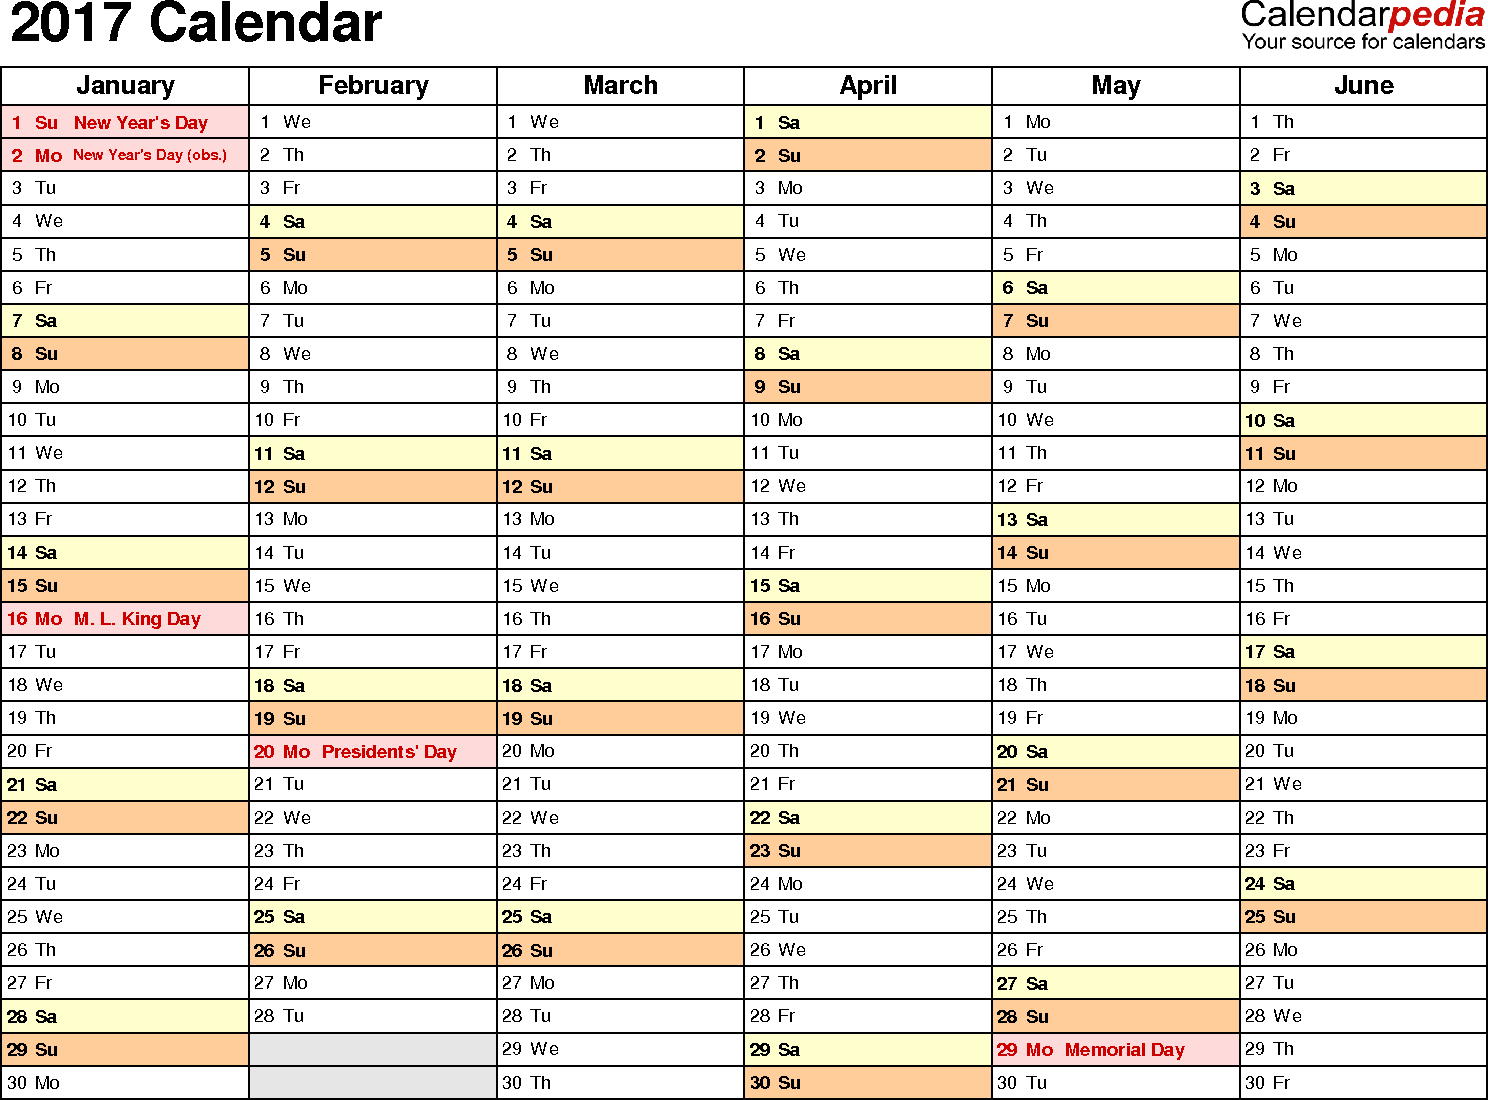 Ediblewildsus  Winning  Calendar  Download  Free Printable Excel Templates Xls With Lovable Template   Calendar For Excel Months Horizontally  Pages Landscape Orientation With Endearing Excel Variable Also Hp Alm Excel Addin In Addition Formulas On Excel And Min Excel As Well As Excel Cell Value Additionally Excel Vba Arrays From Calendarpediacom With Ediblewildsus  Lovable  Calendar  Download  Free Printable Excel Templates Xls With Endearing Template   Calendar For Excel Months Horizontally  Pages Landscape Orientation And Winning Excel Variable Also Hp Alm Excel Addin In Addition Formulas On Excel From Calendarpediacom